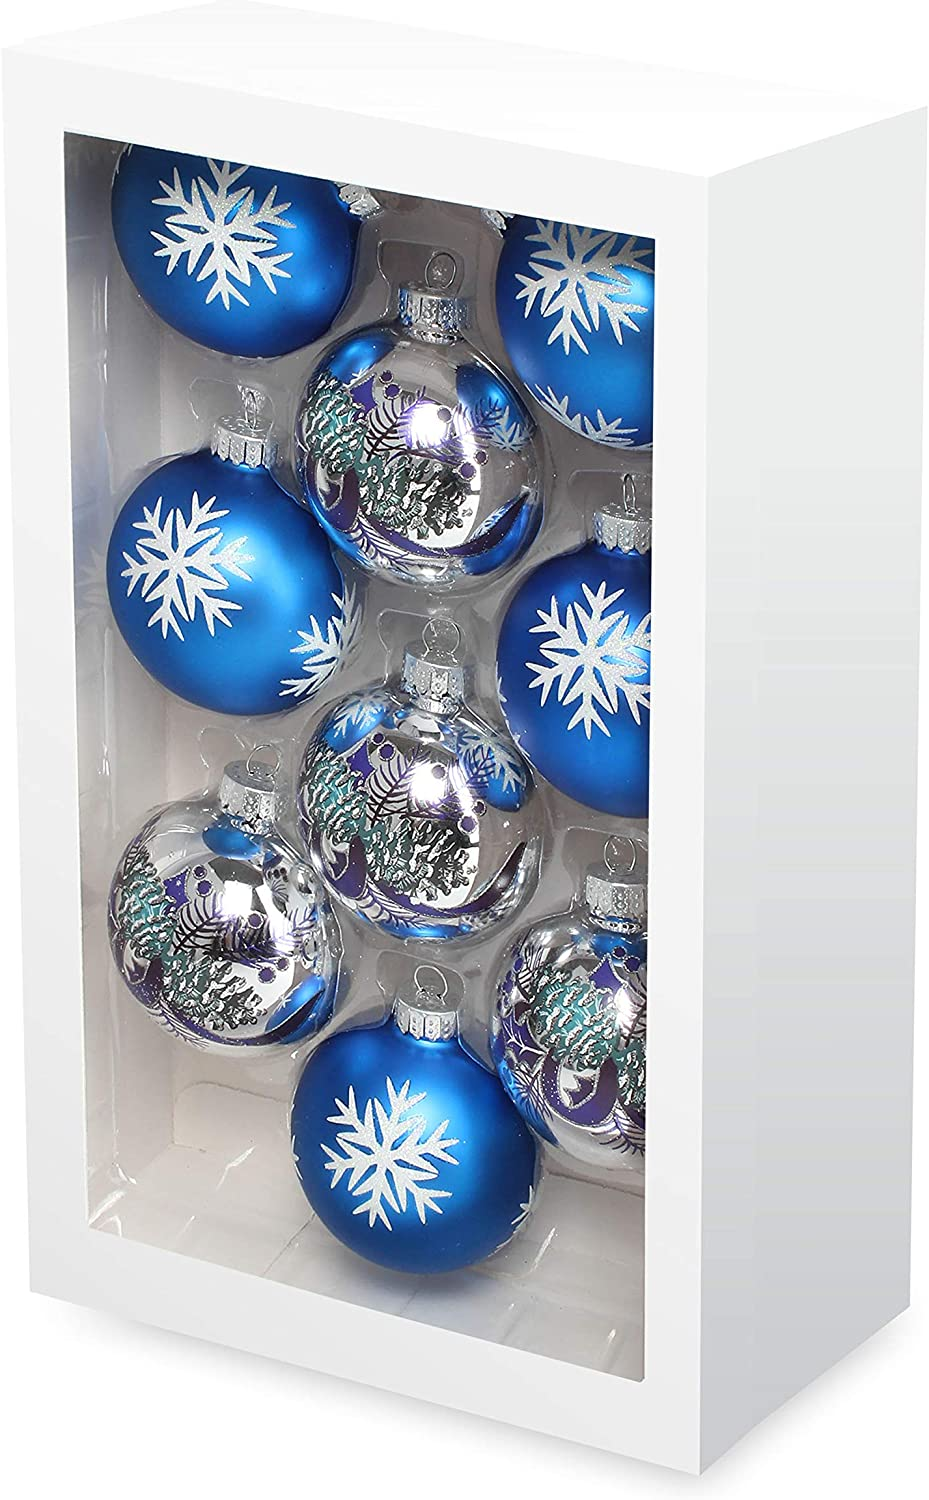 Costyleen Christmas Decoration Colorful Glass Balls Ornaments Set Festival Home Party Decors Xmas Tree Hanging Pendant Snowflake Leaf Patterns 9pc Blue Silver Printings 2.7in